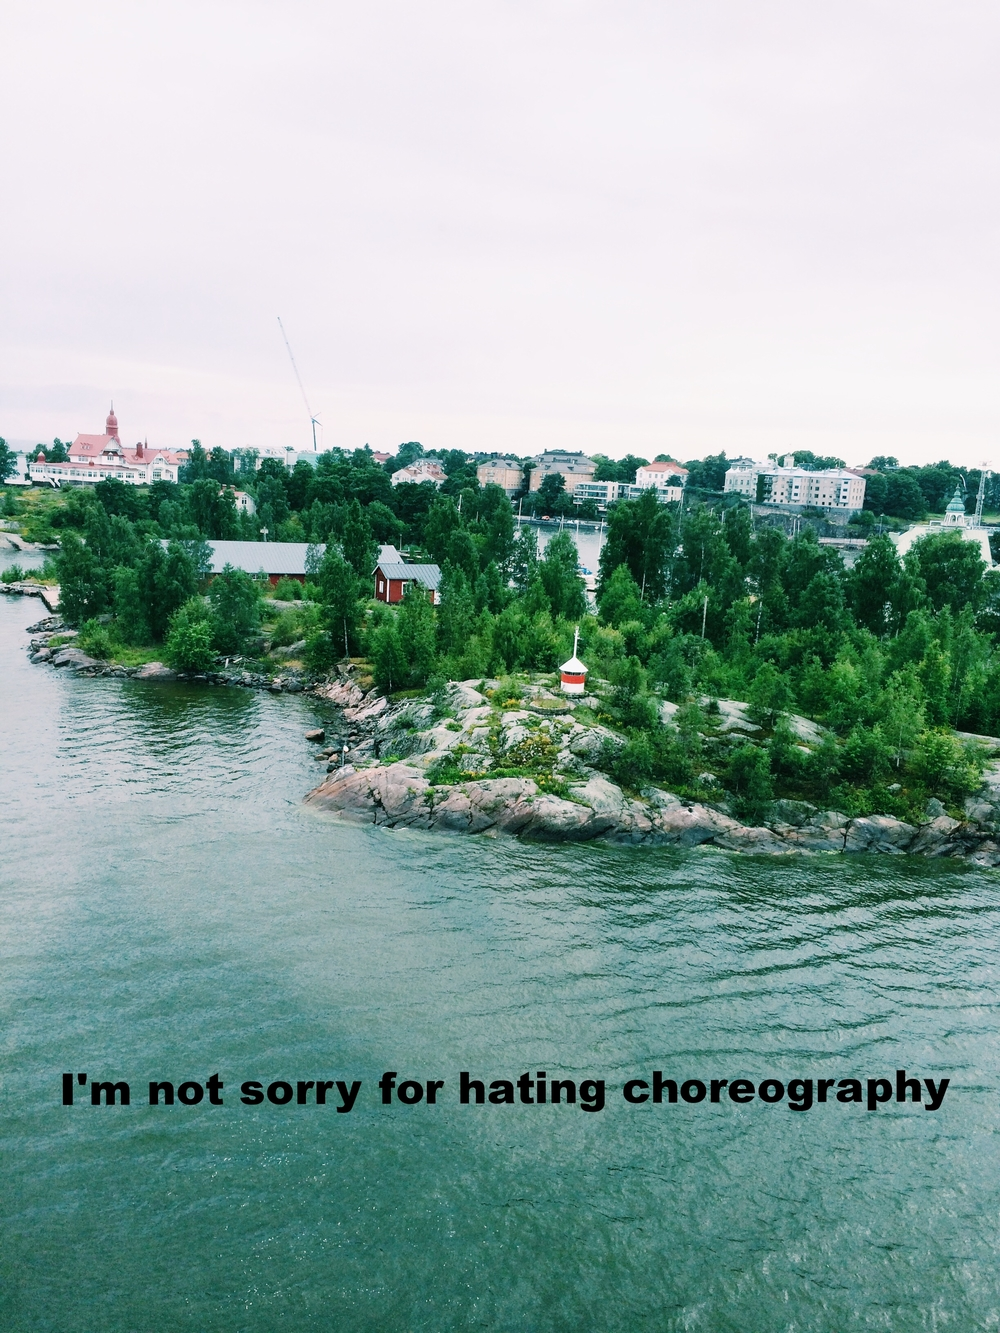 "Elena February 12 2016 Image of a green archipelago in the middle of the bay. Rocks and green trees surround small red buildings and a house. ""I'm not sorry for hating choreography"" is overlaid."